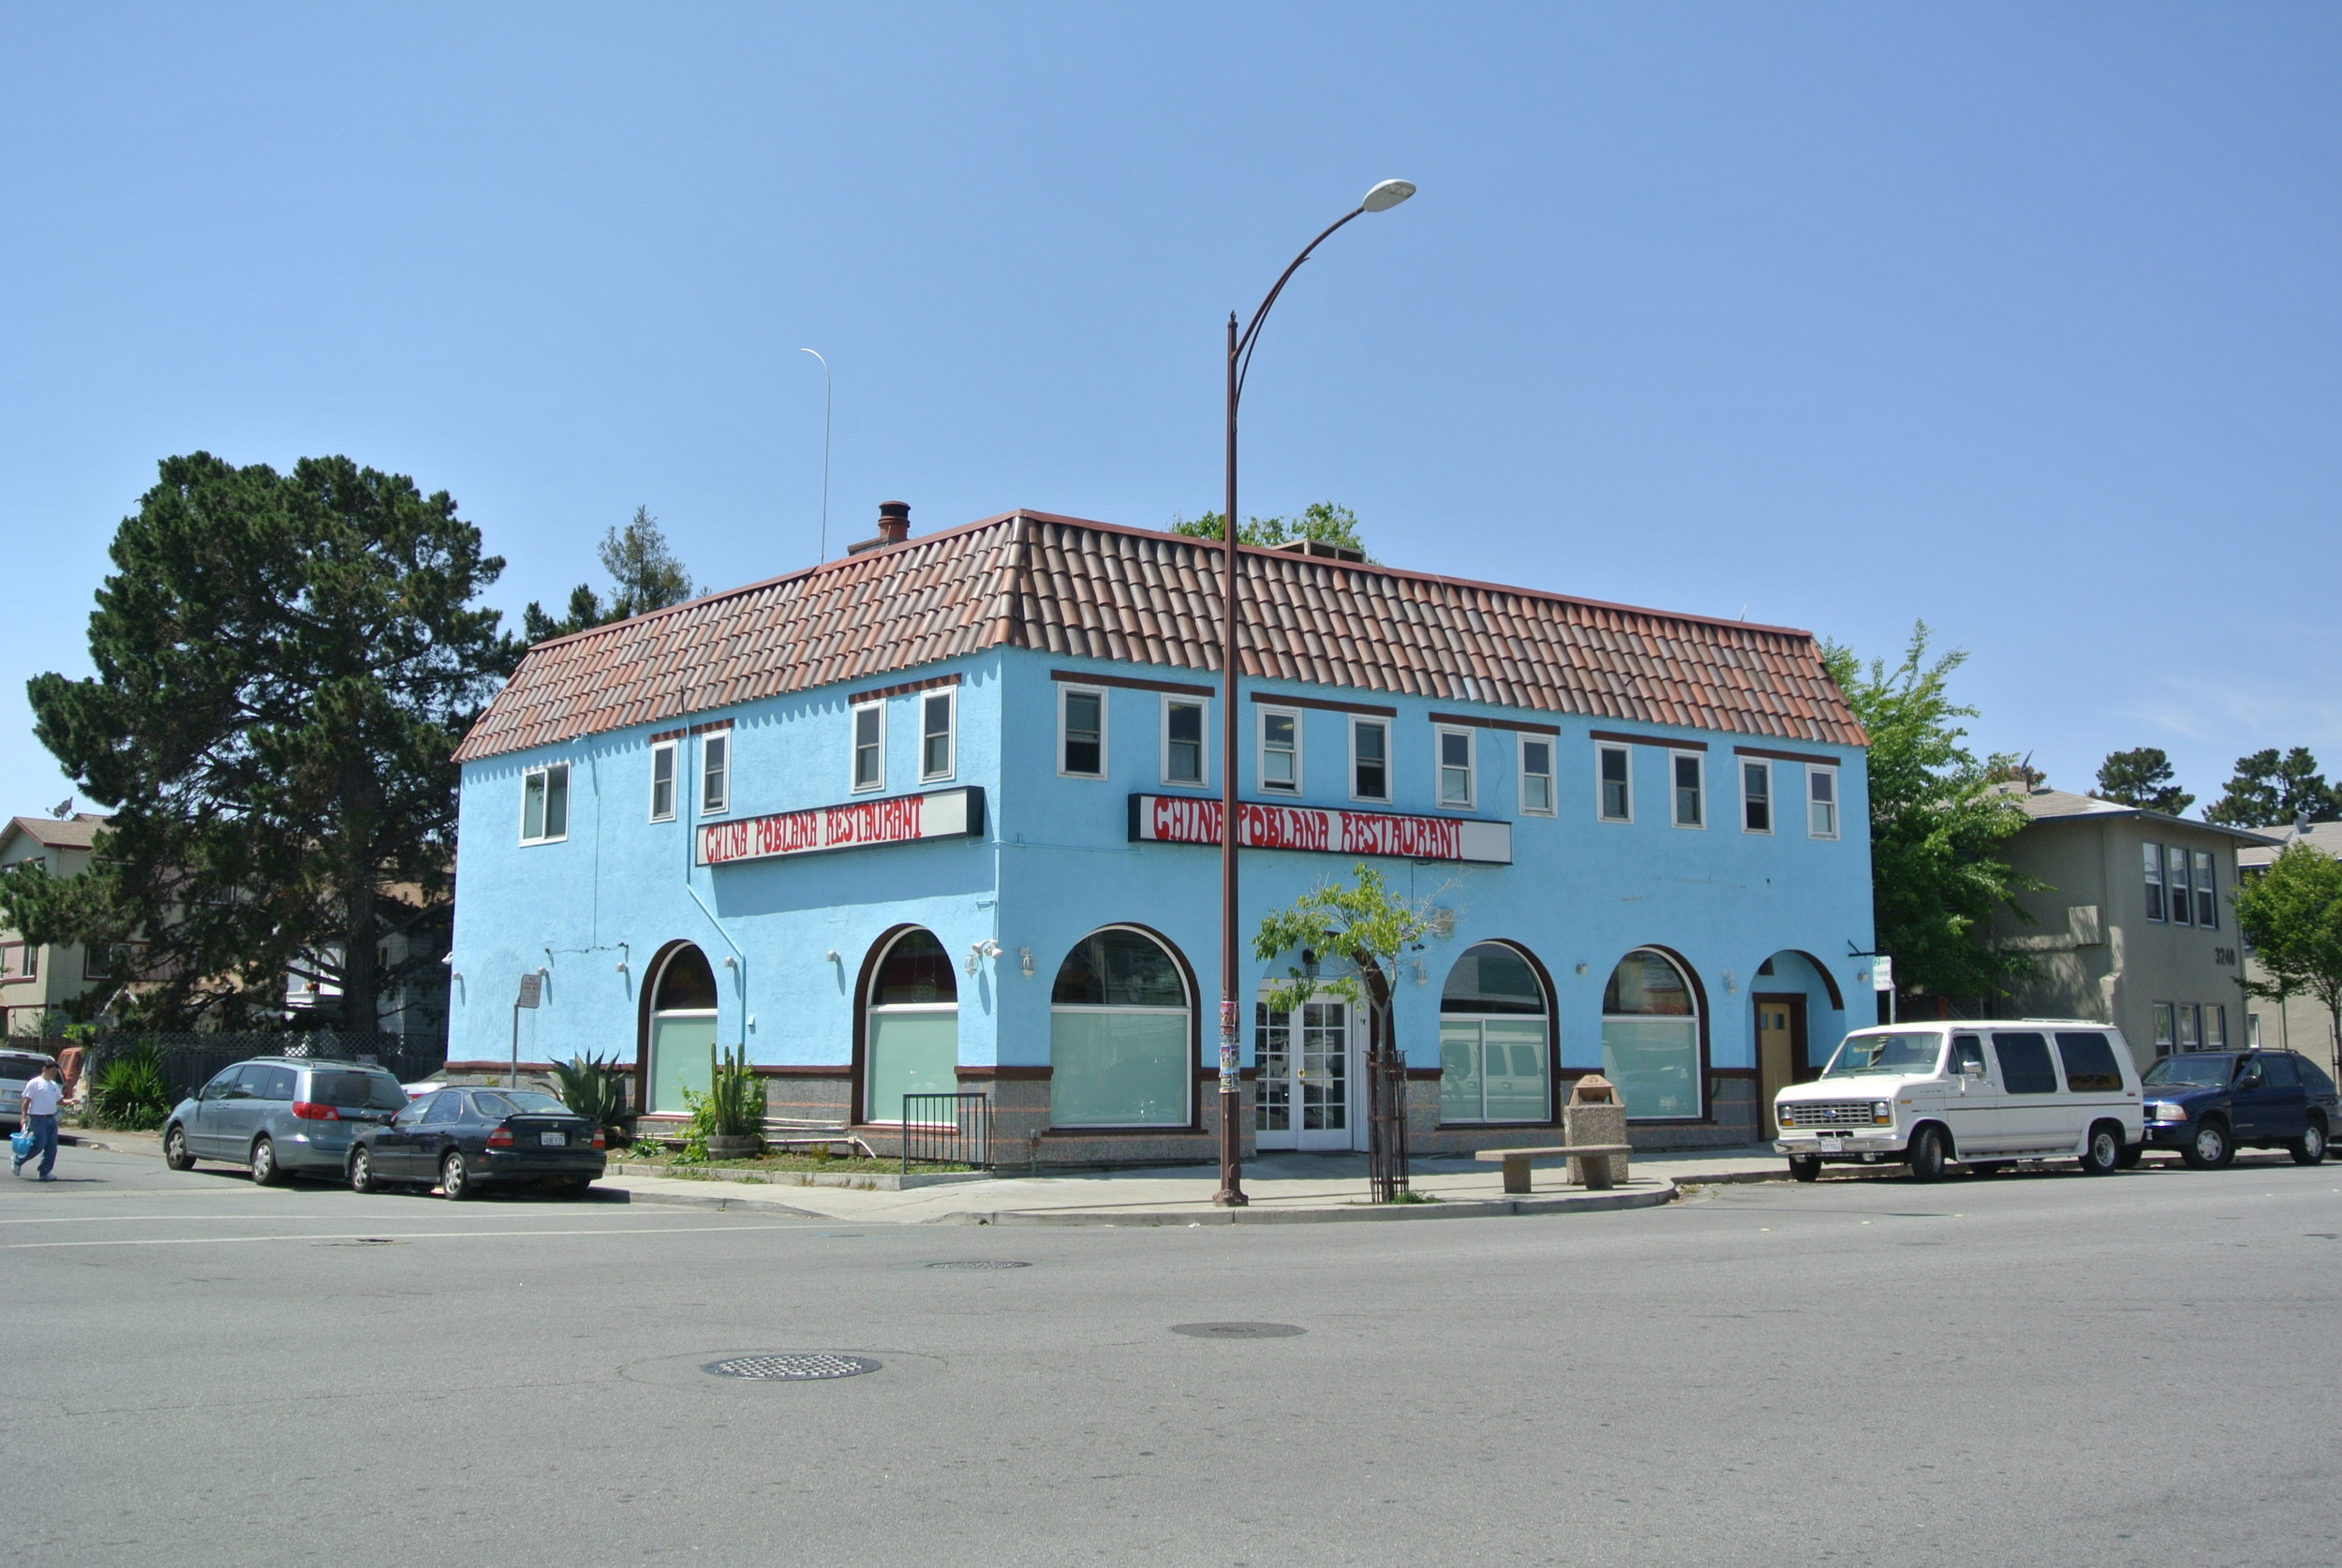 3250 Middlefield Road, Menlo Park, CA 94025 4,800 SF Office over Retail (Vacant) $1,520,000